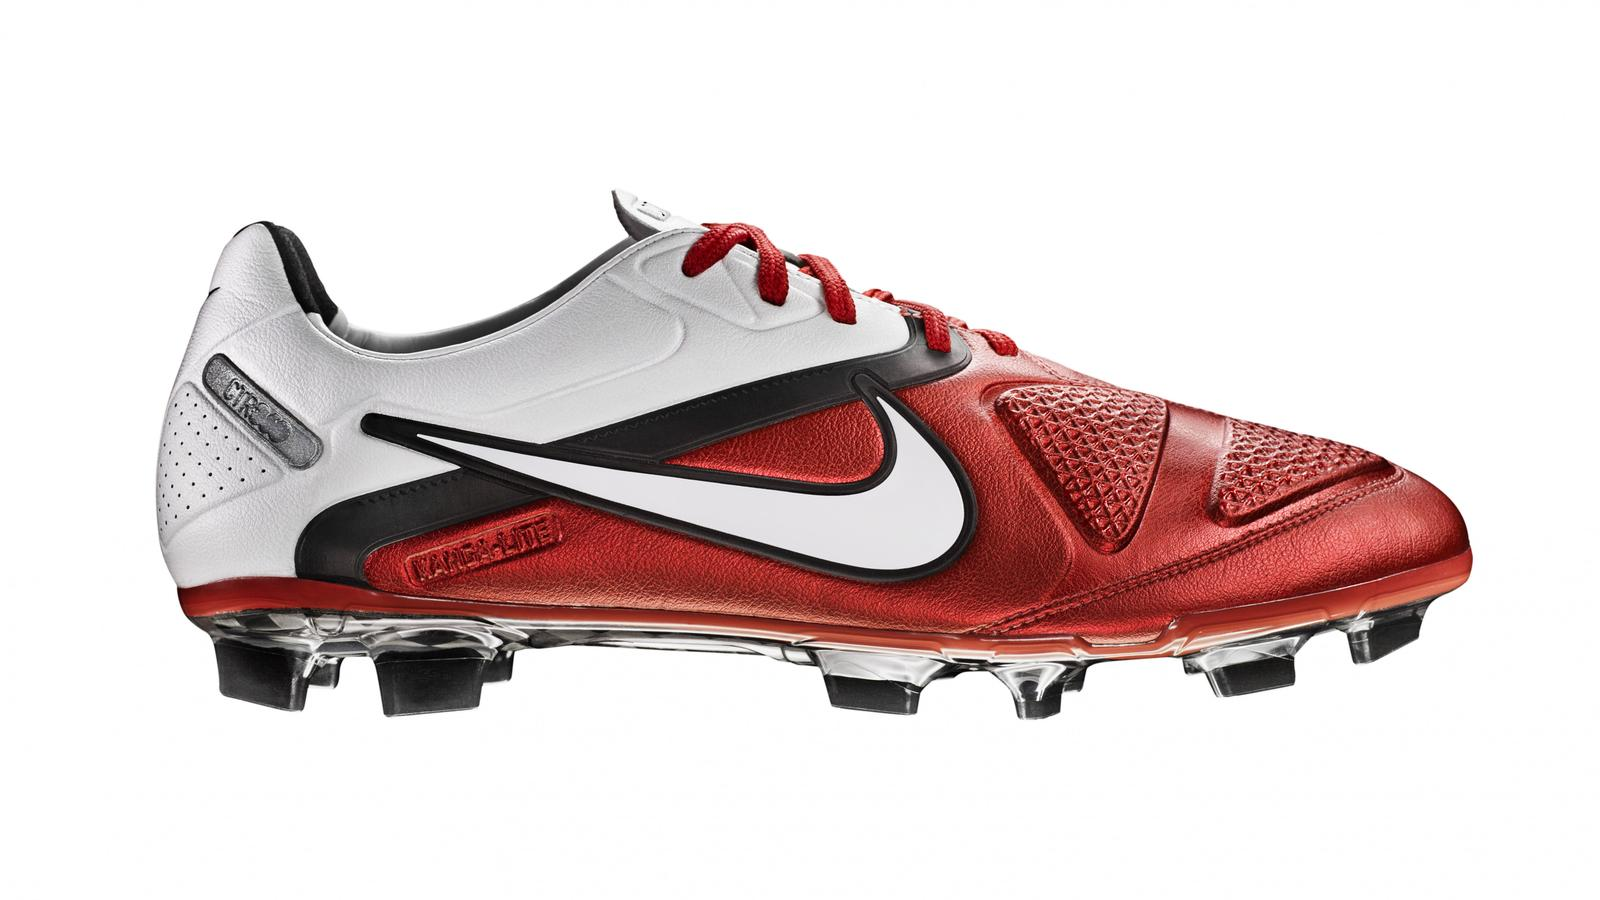 new concept c9667 45361 CTR360 Maestri II Elite Football Boot